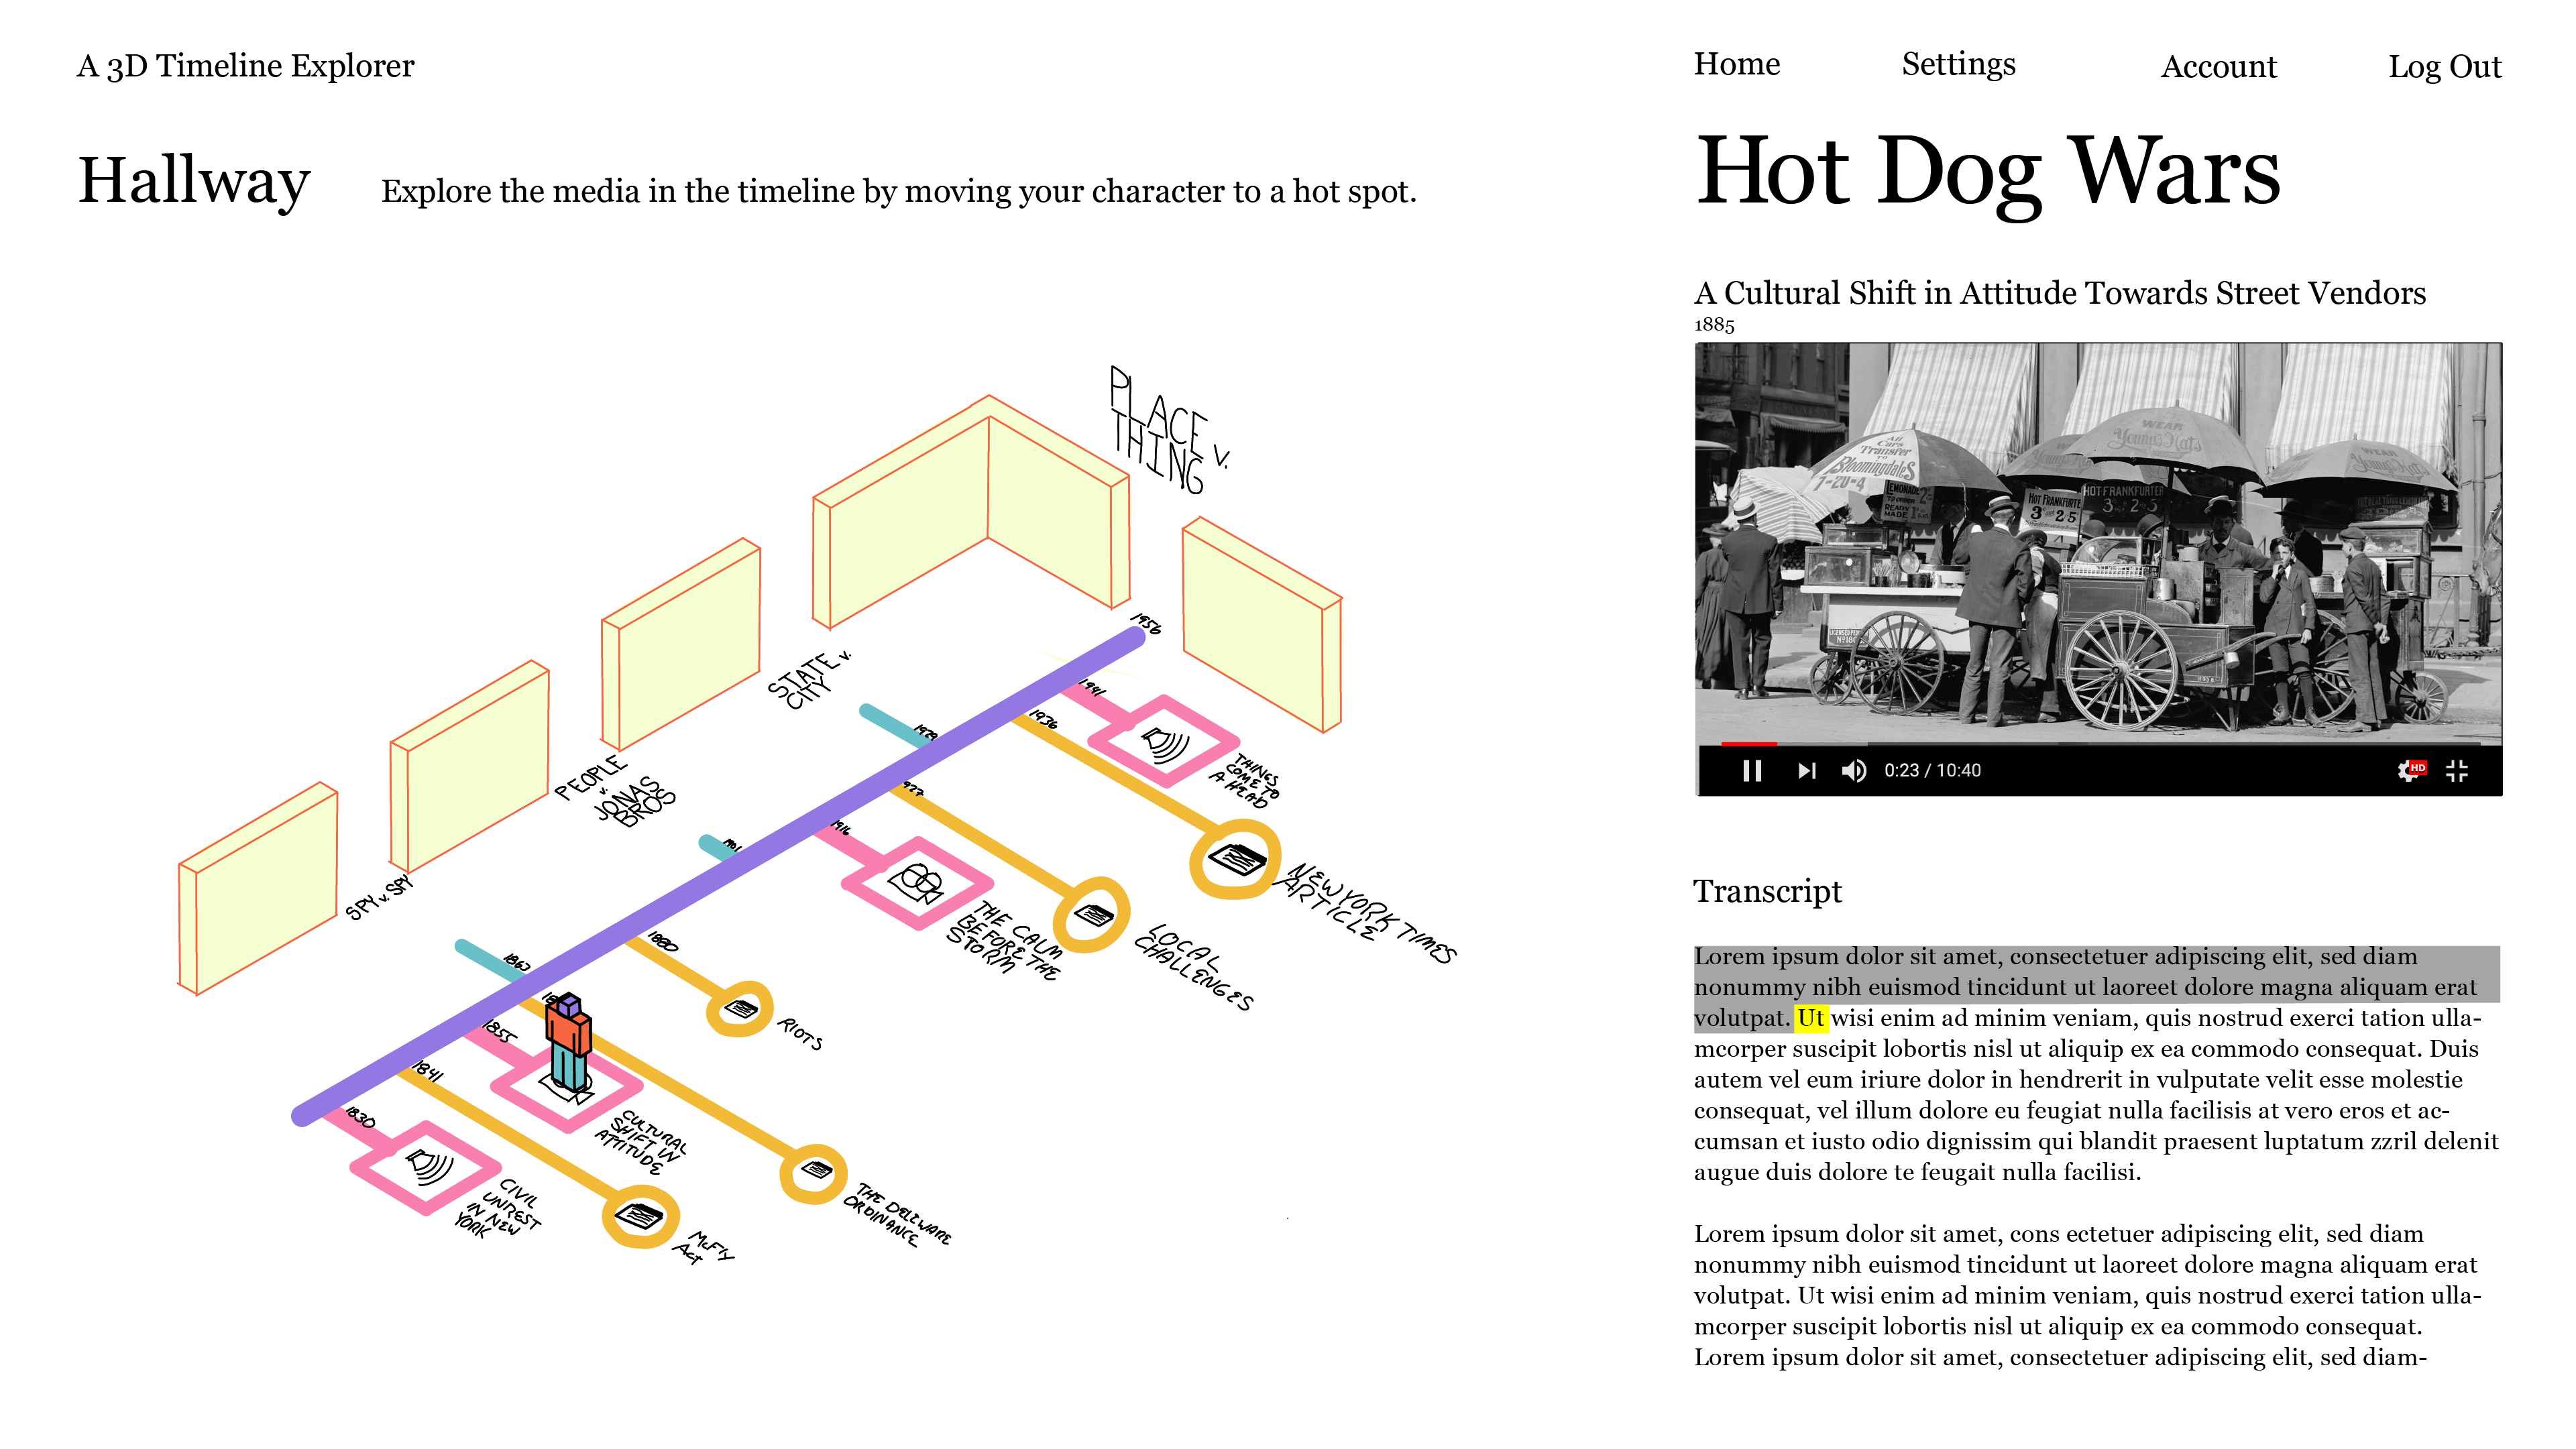 a 3d cartoon depiction of a hallway with a timeline on the floor, marked with various hot spot symbols for sounds, movies or articles